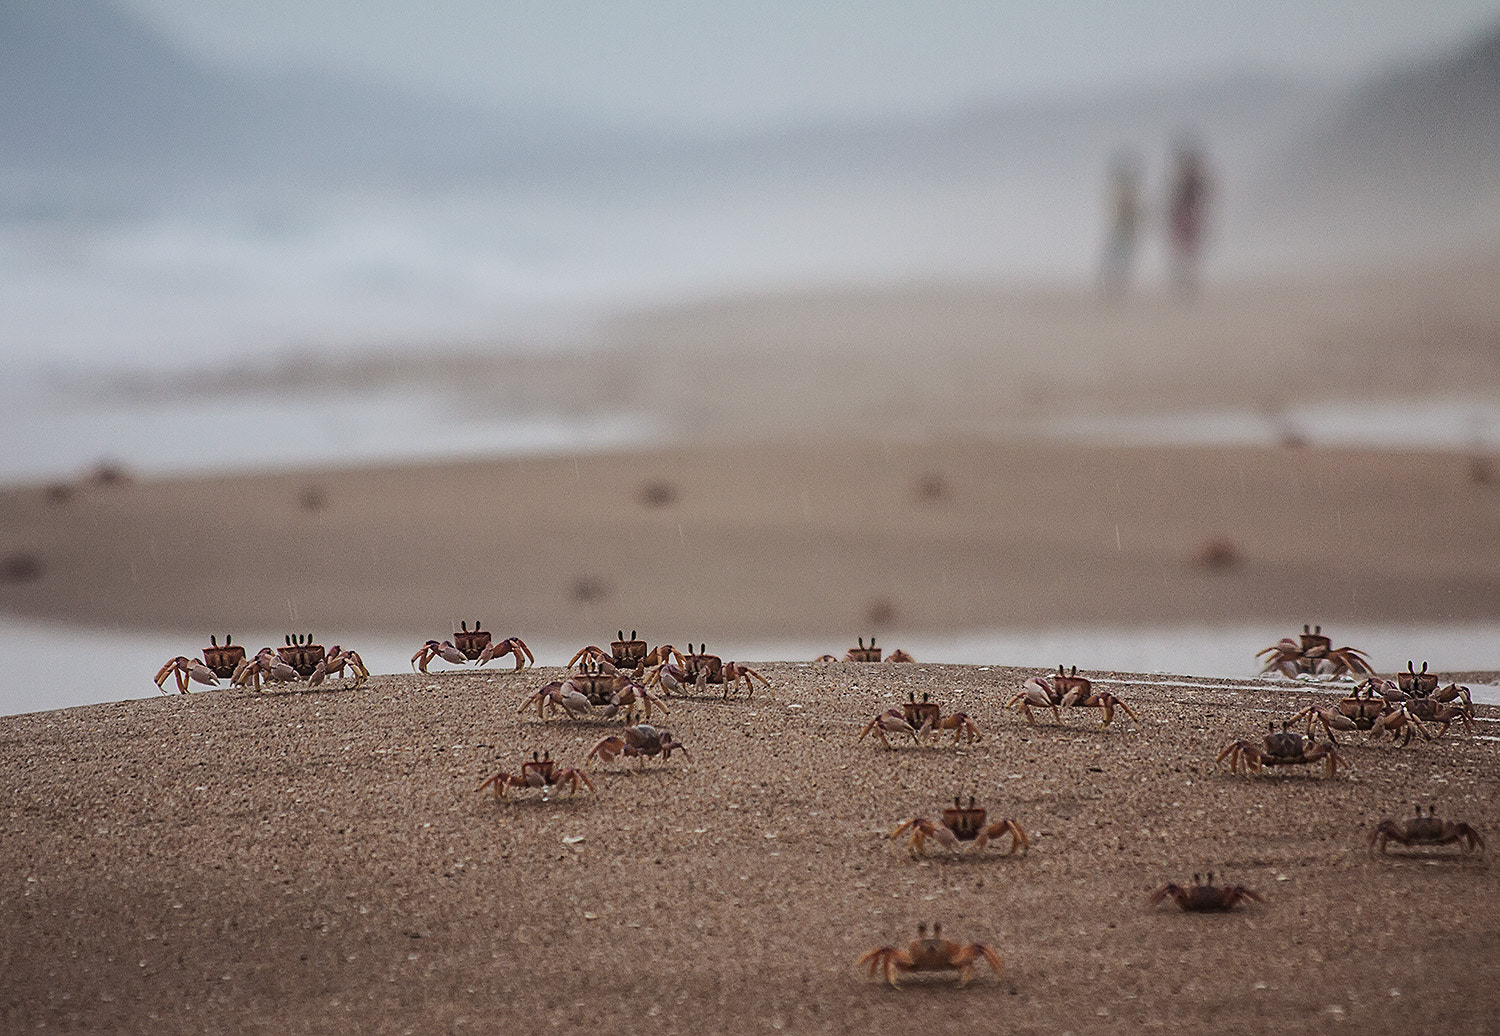 Photograph World of crabs by Andrey Sidorov on 500px